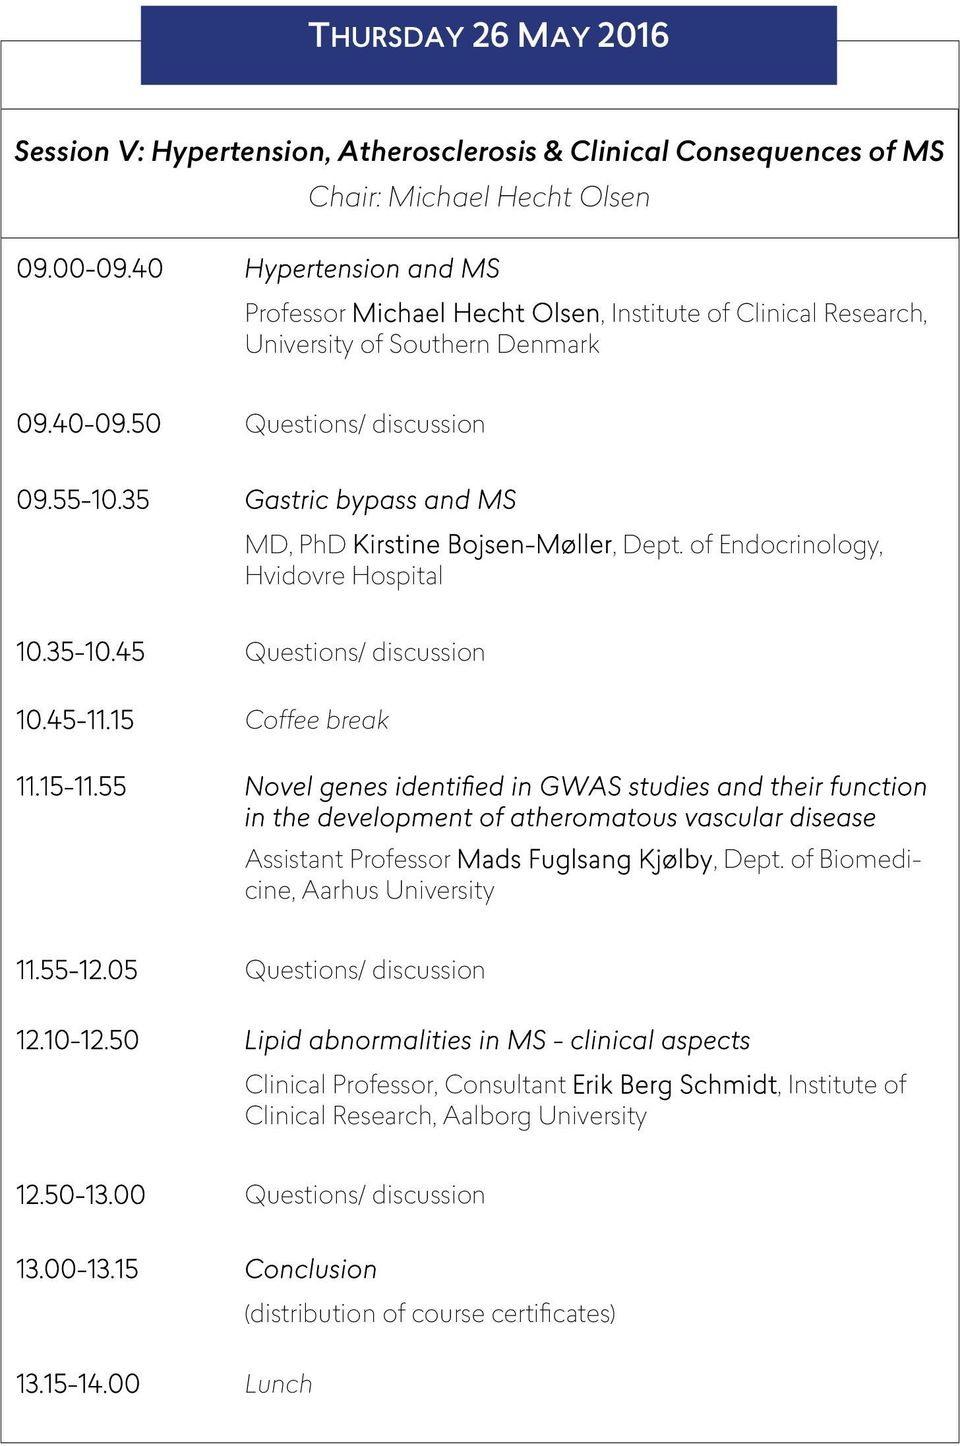 35 Gastric bypass and MS MD, PhD Kirstine Bojsen-Møller, Dept. of Endocrinology, Hvidovre Hospital 10.35-10.45 Questions/ discussion 10.45-11.15 Coffee break 11.15-11.